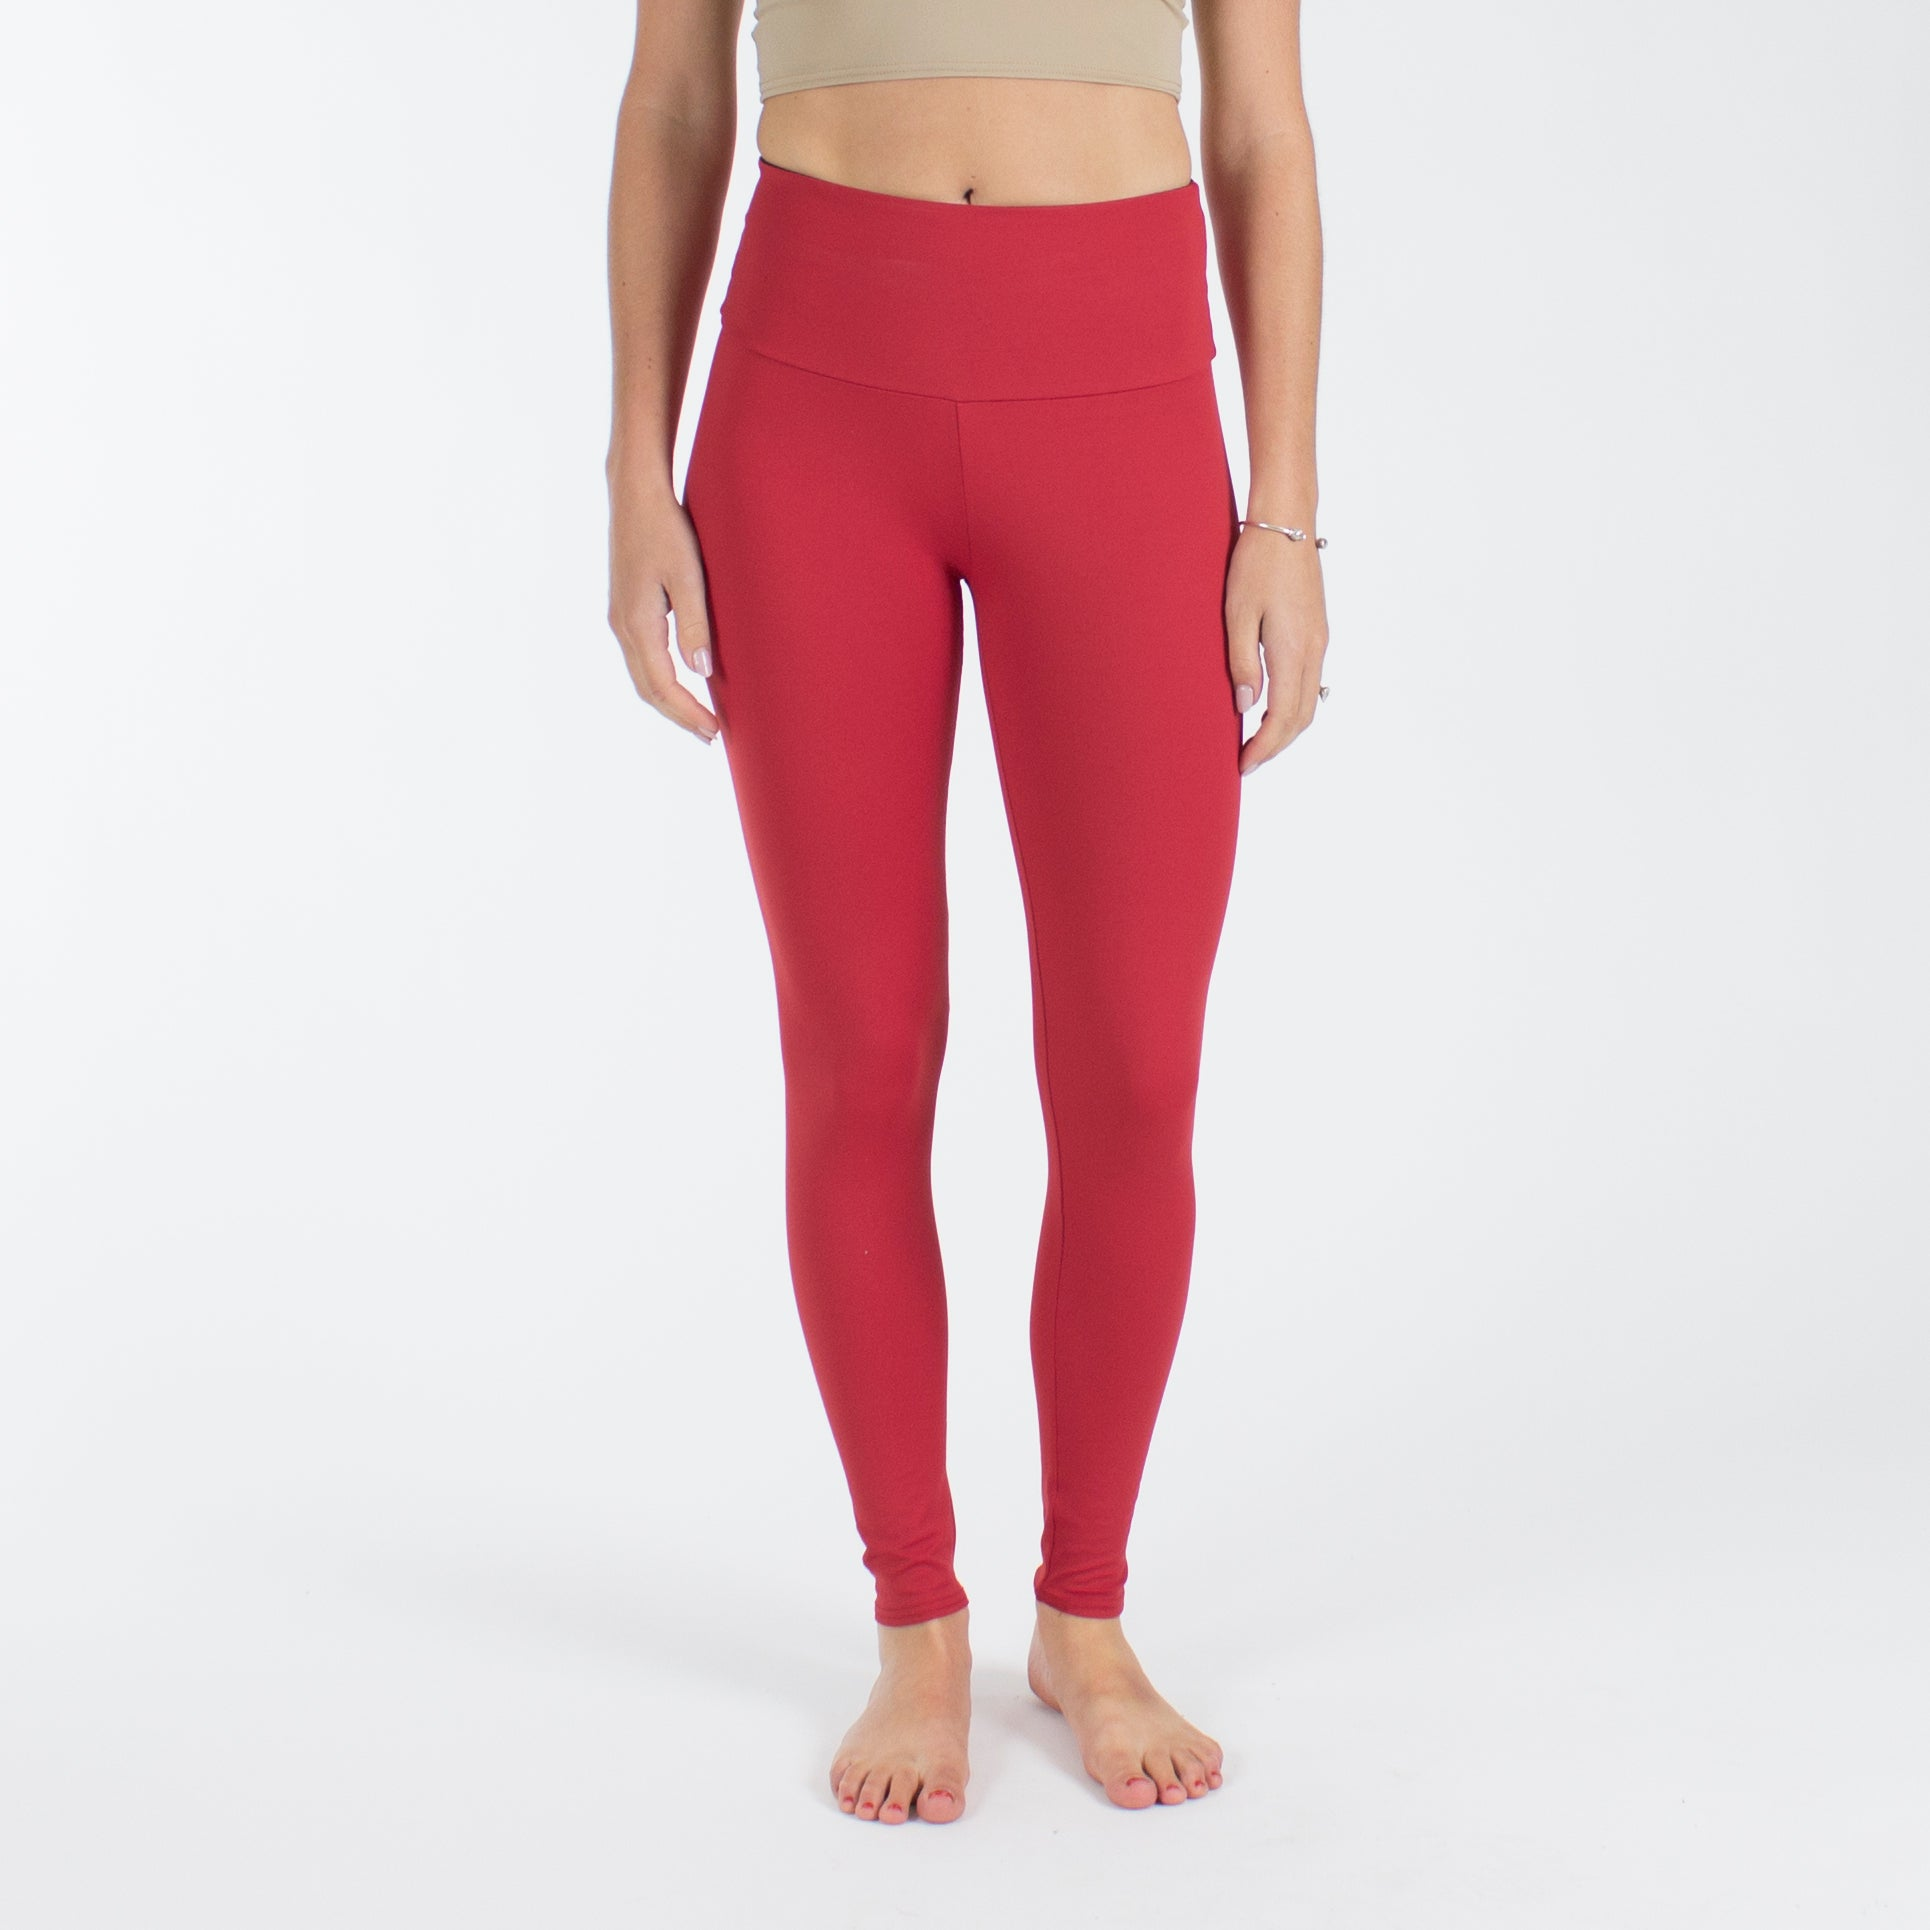 Sample Rack - Barely There Leggings - XS